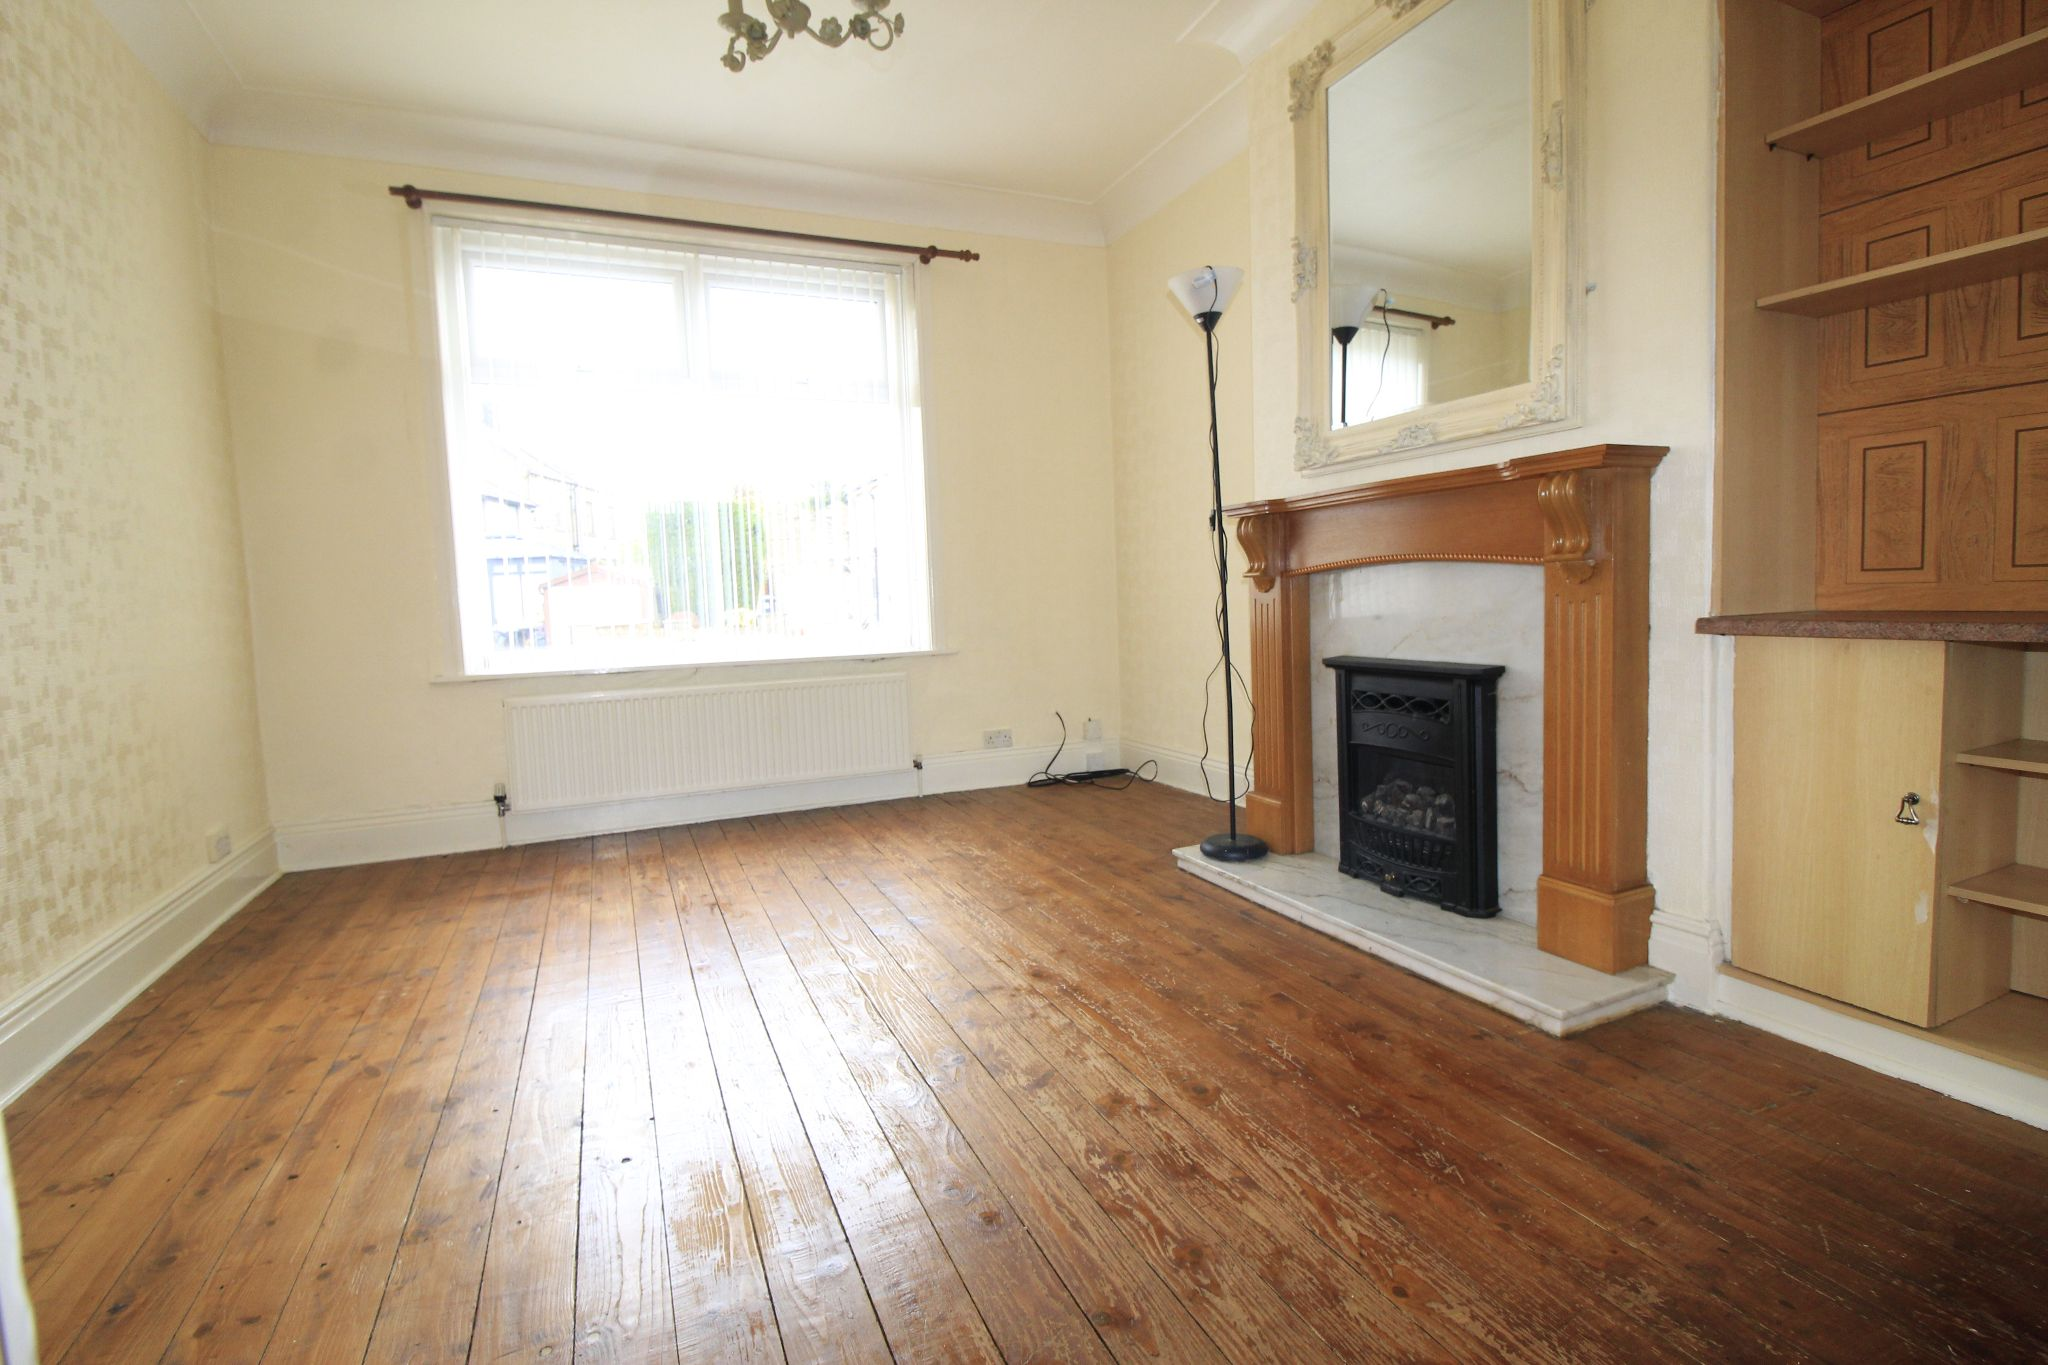 3 bedroom end terraced house Let in Bradford - Lounge